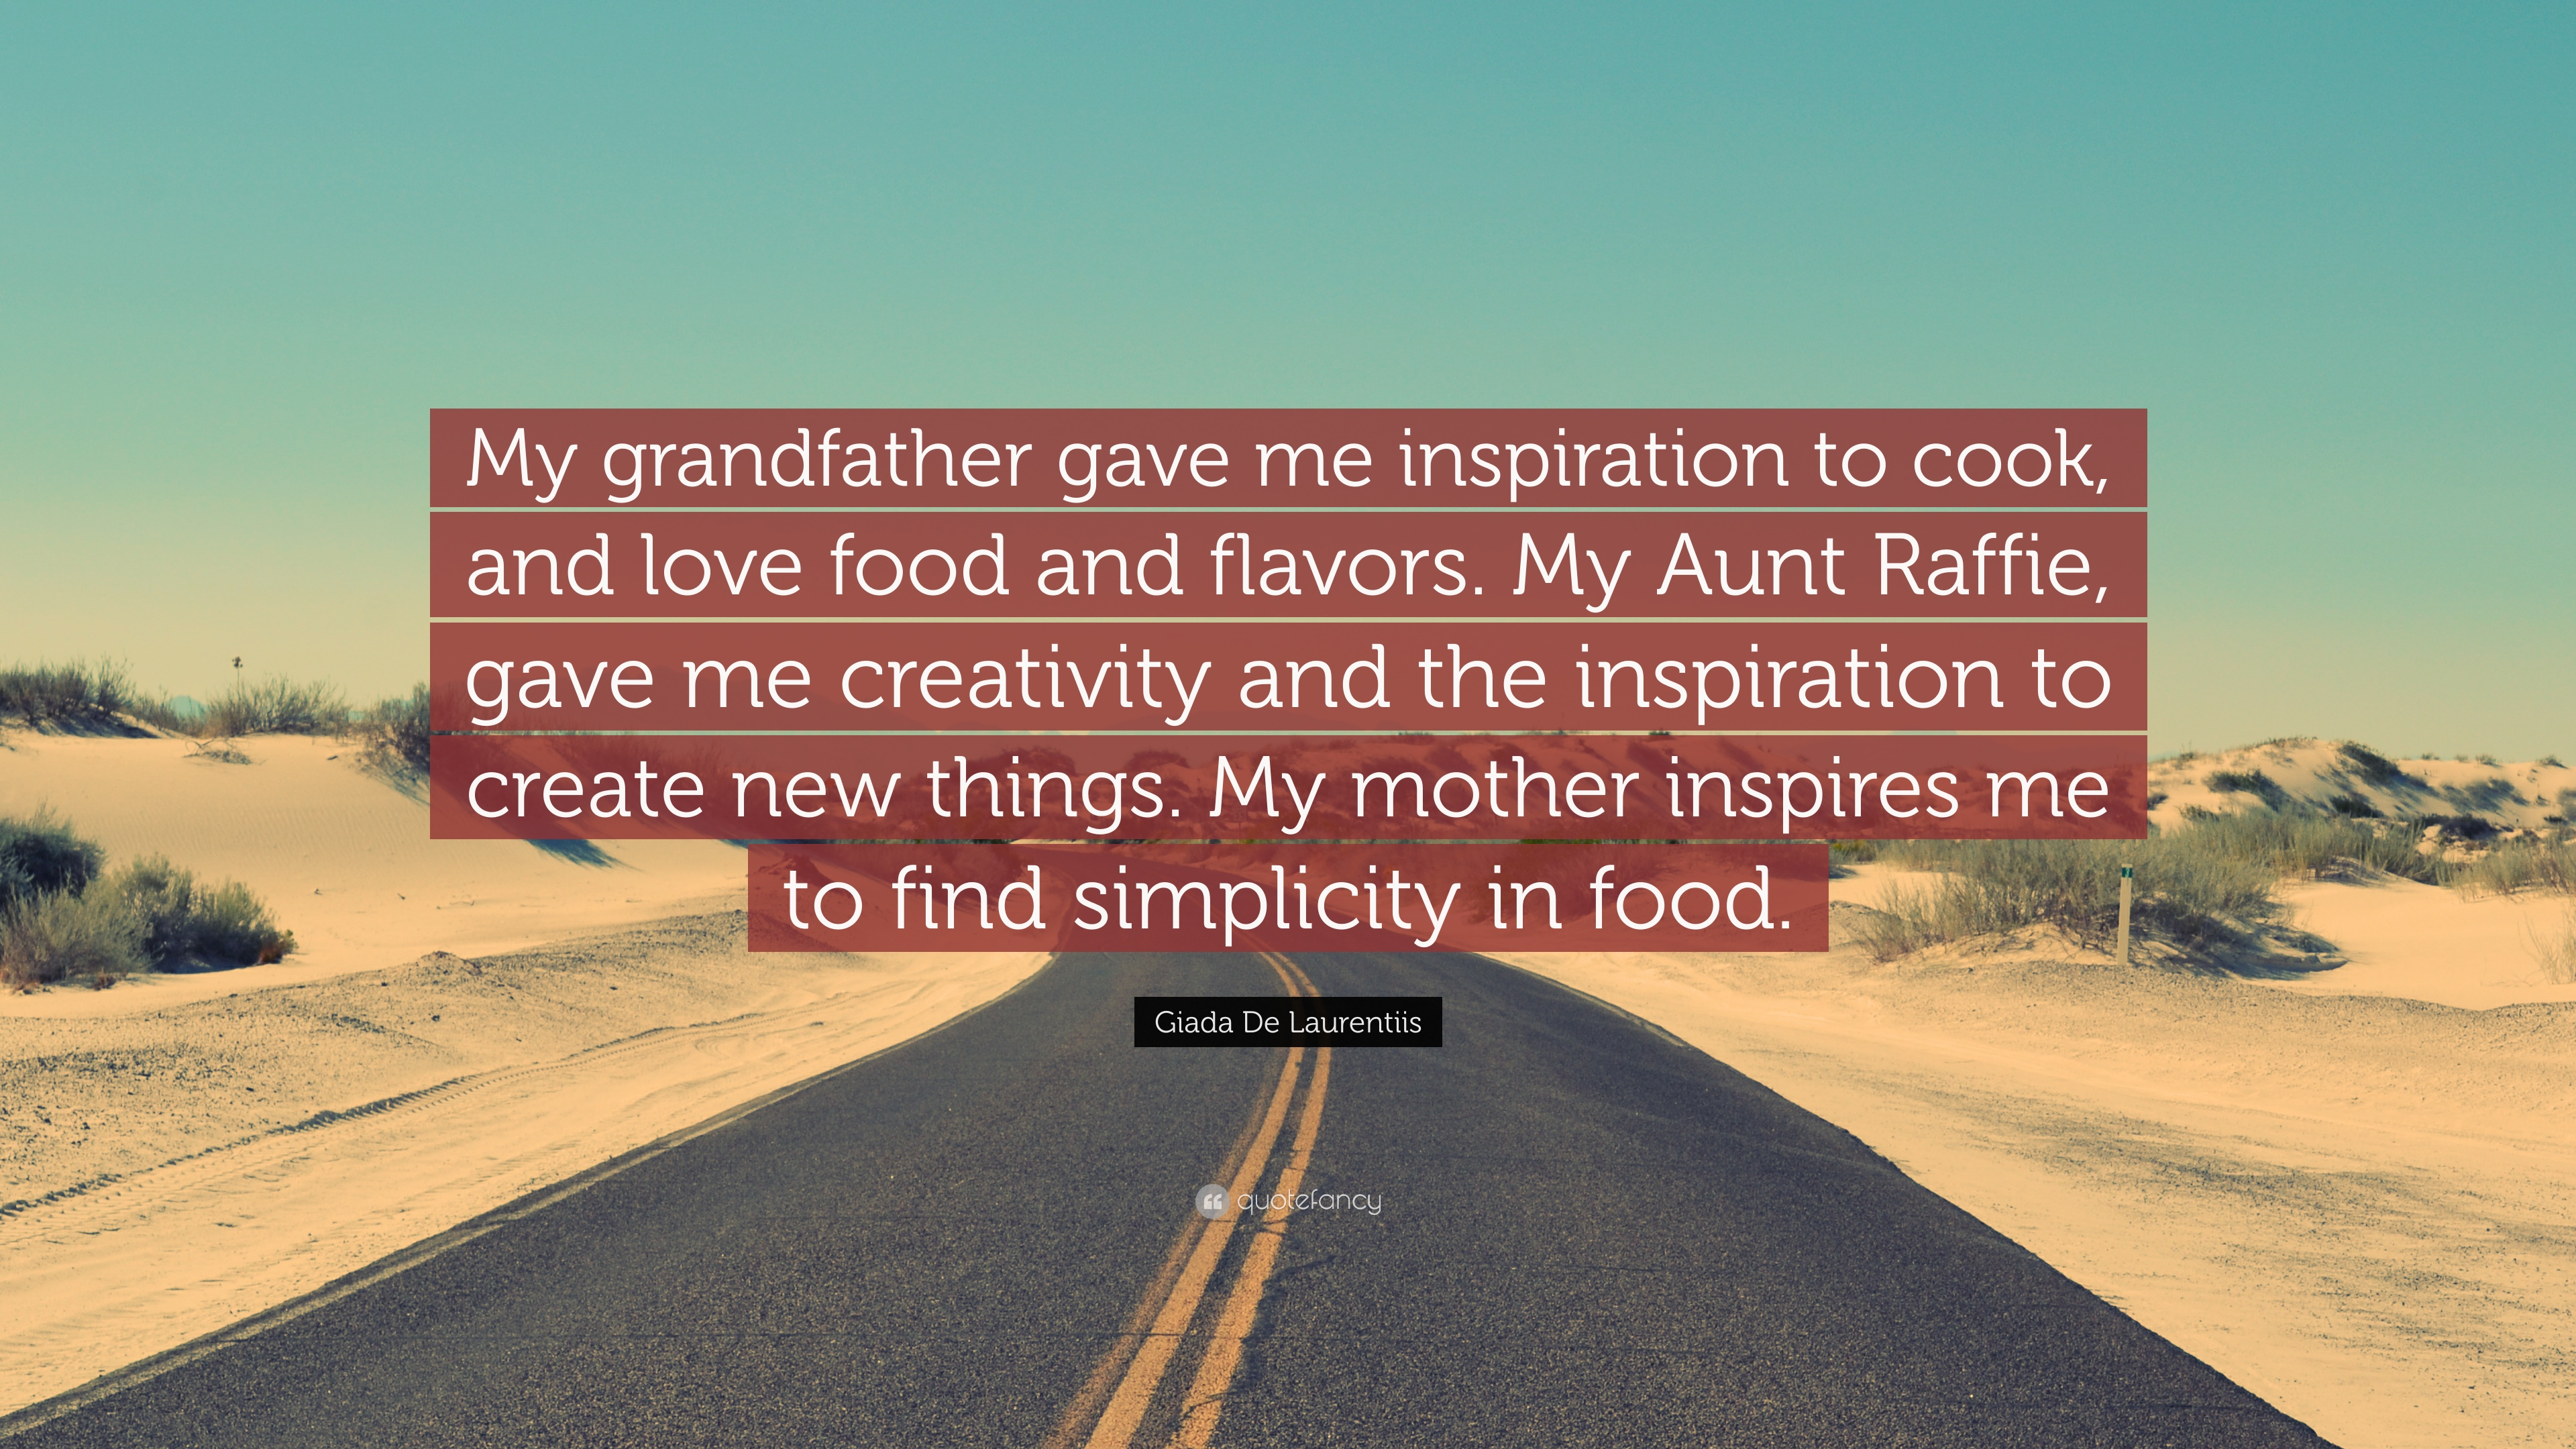 Giada De Laurentiis Quote: U201cMy Grandfather Gave Me Inspiration To Cook, And  Love